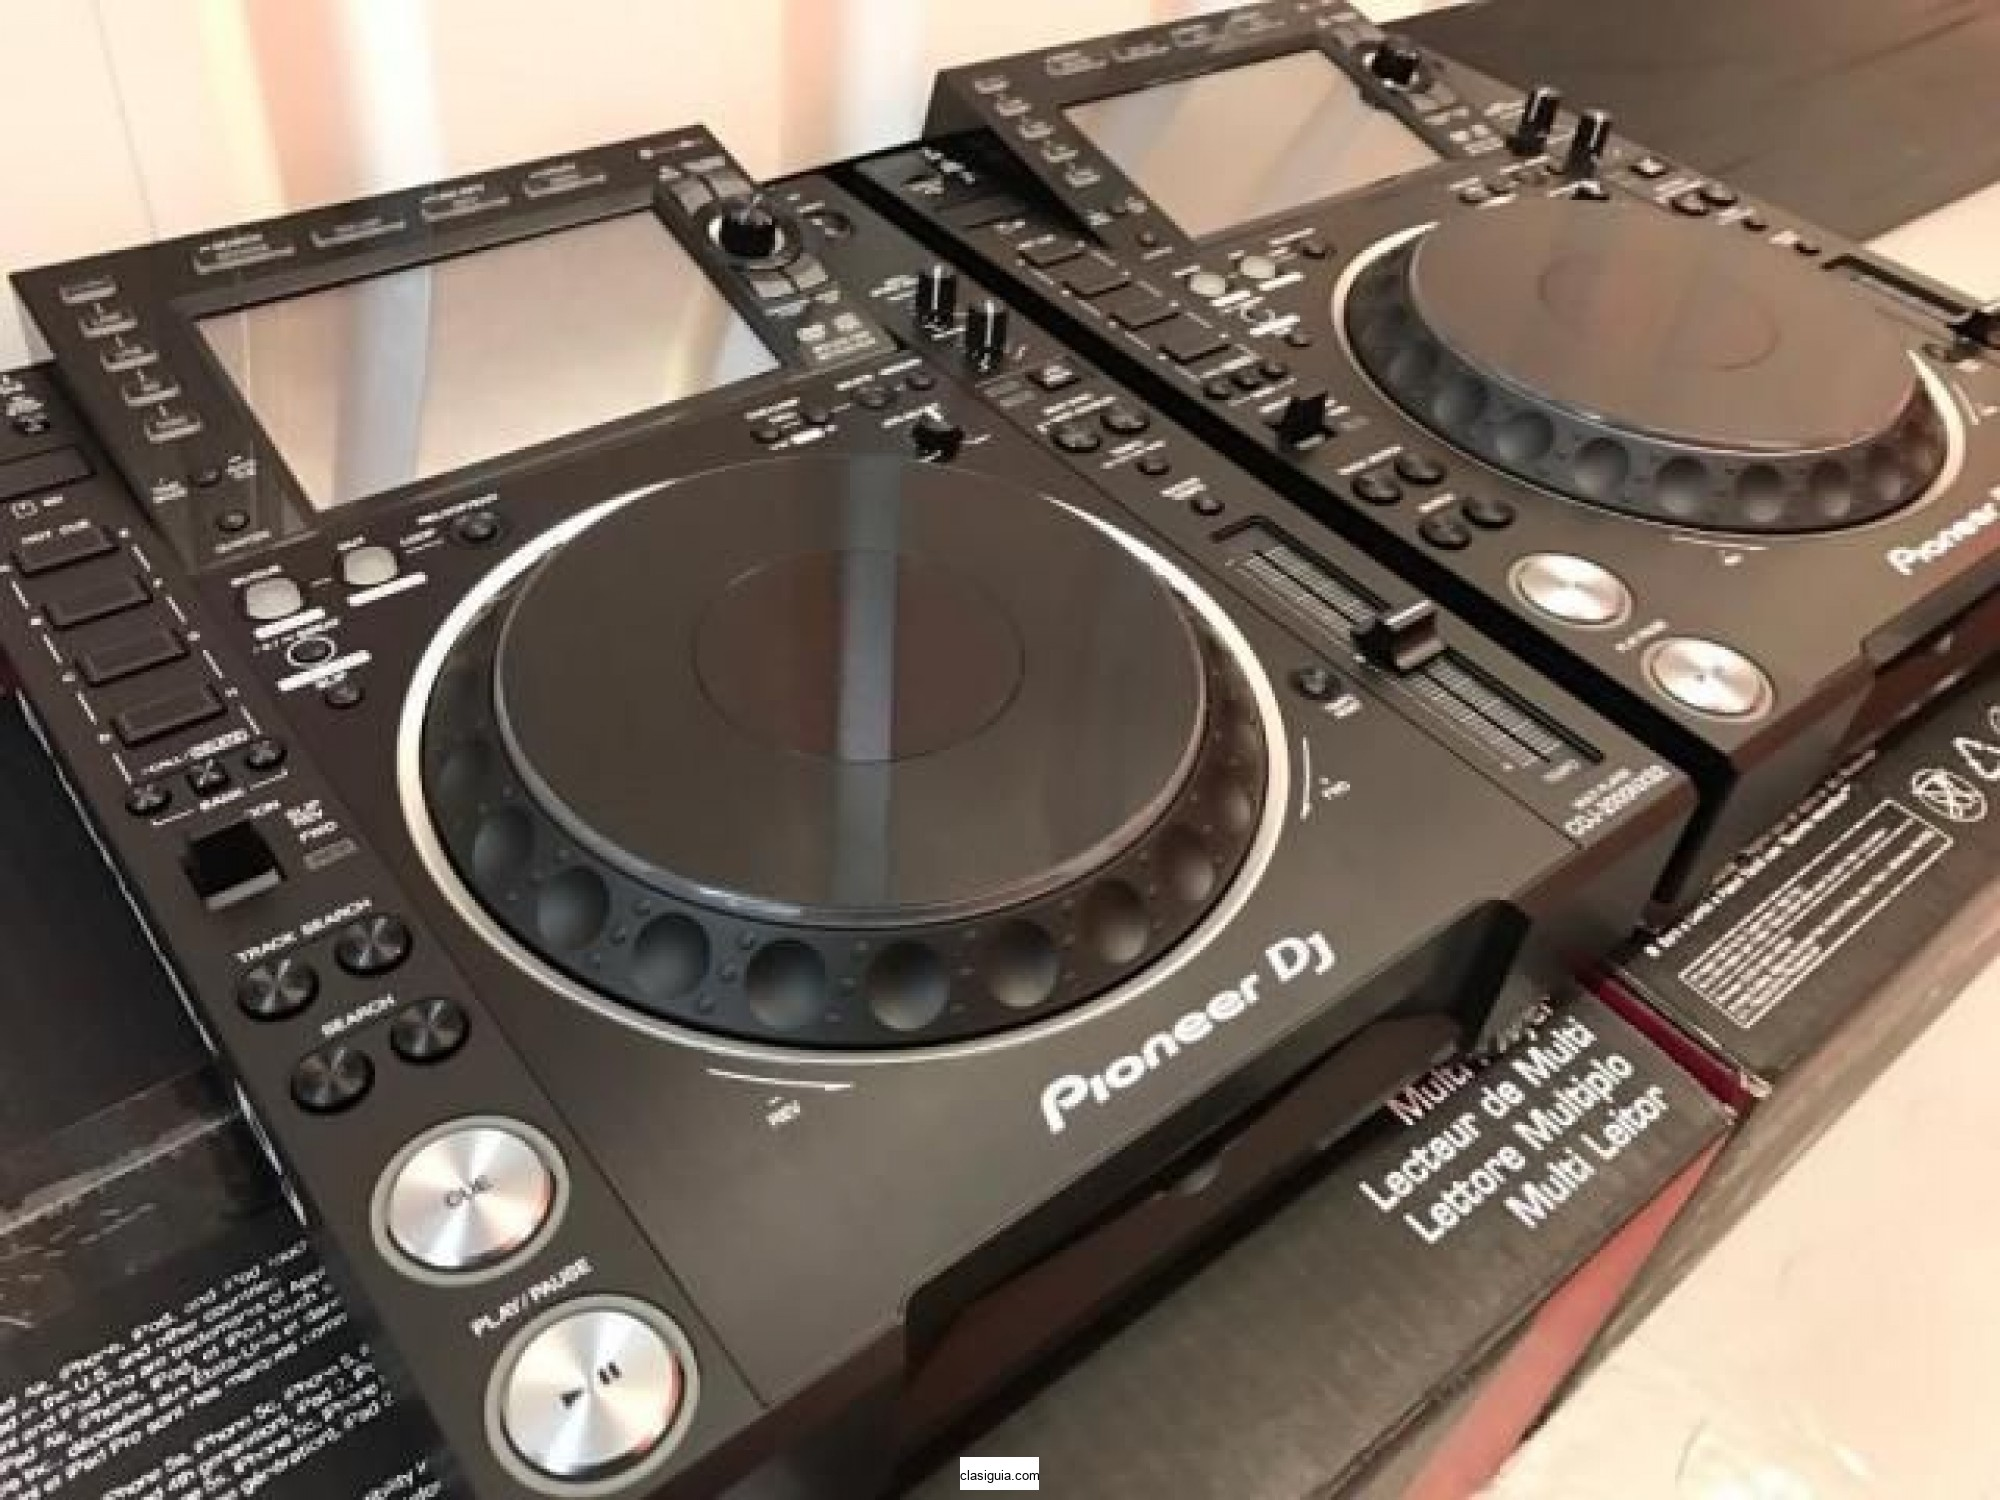 2x Pioneer CDJ-2000NXS2 + 1x DJM-900NXS2 mixer = $2000USD , Whatsapp Chat : +27837724253